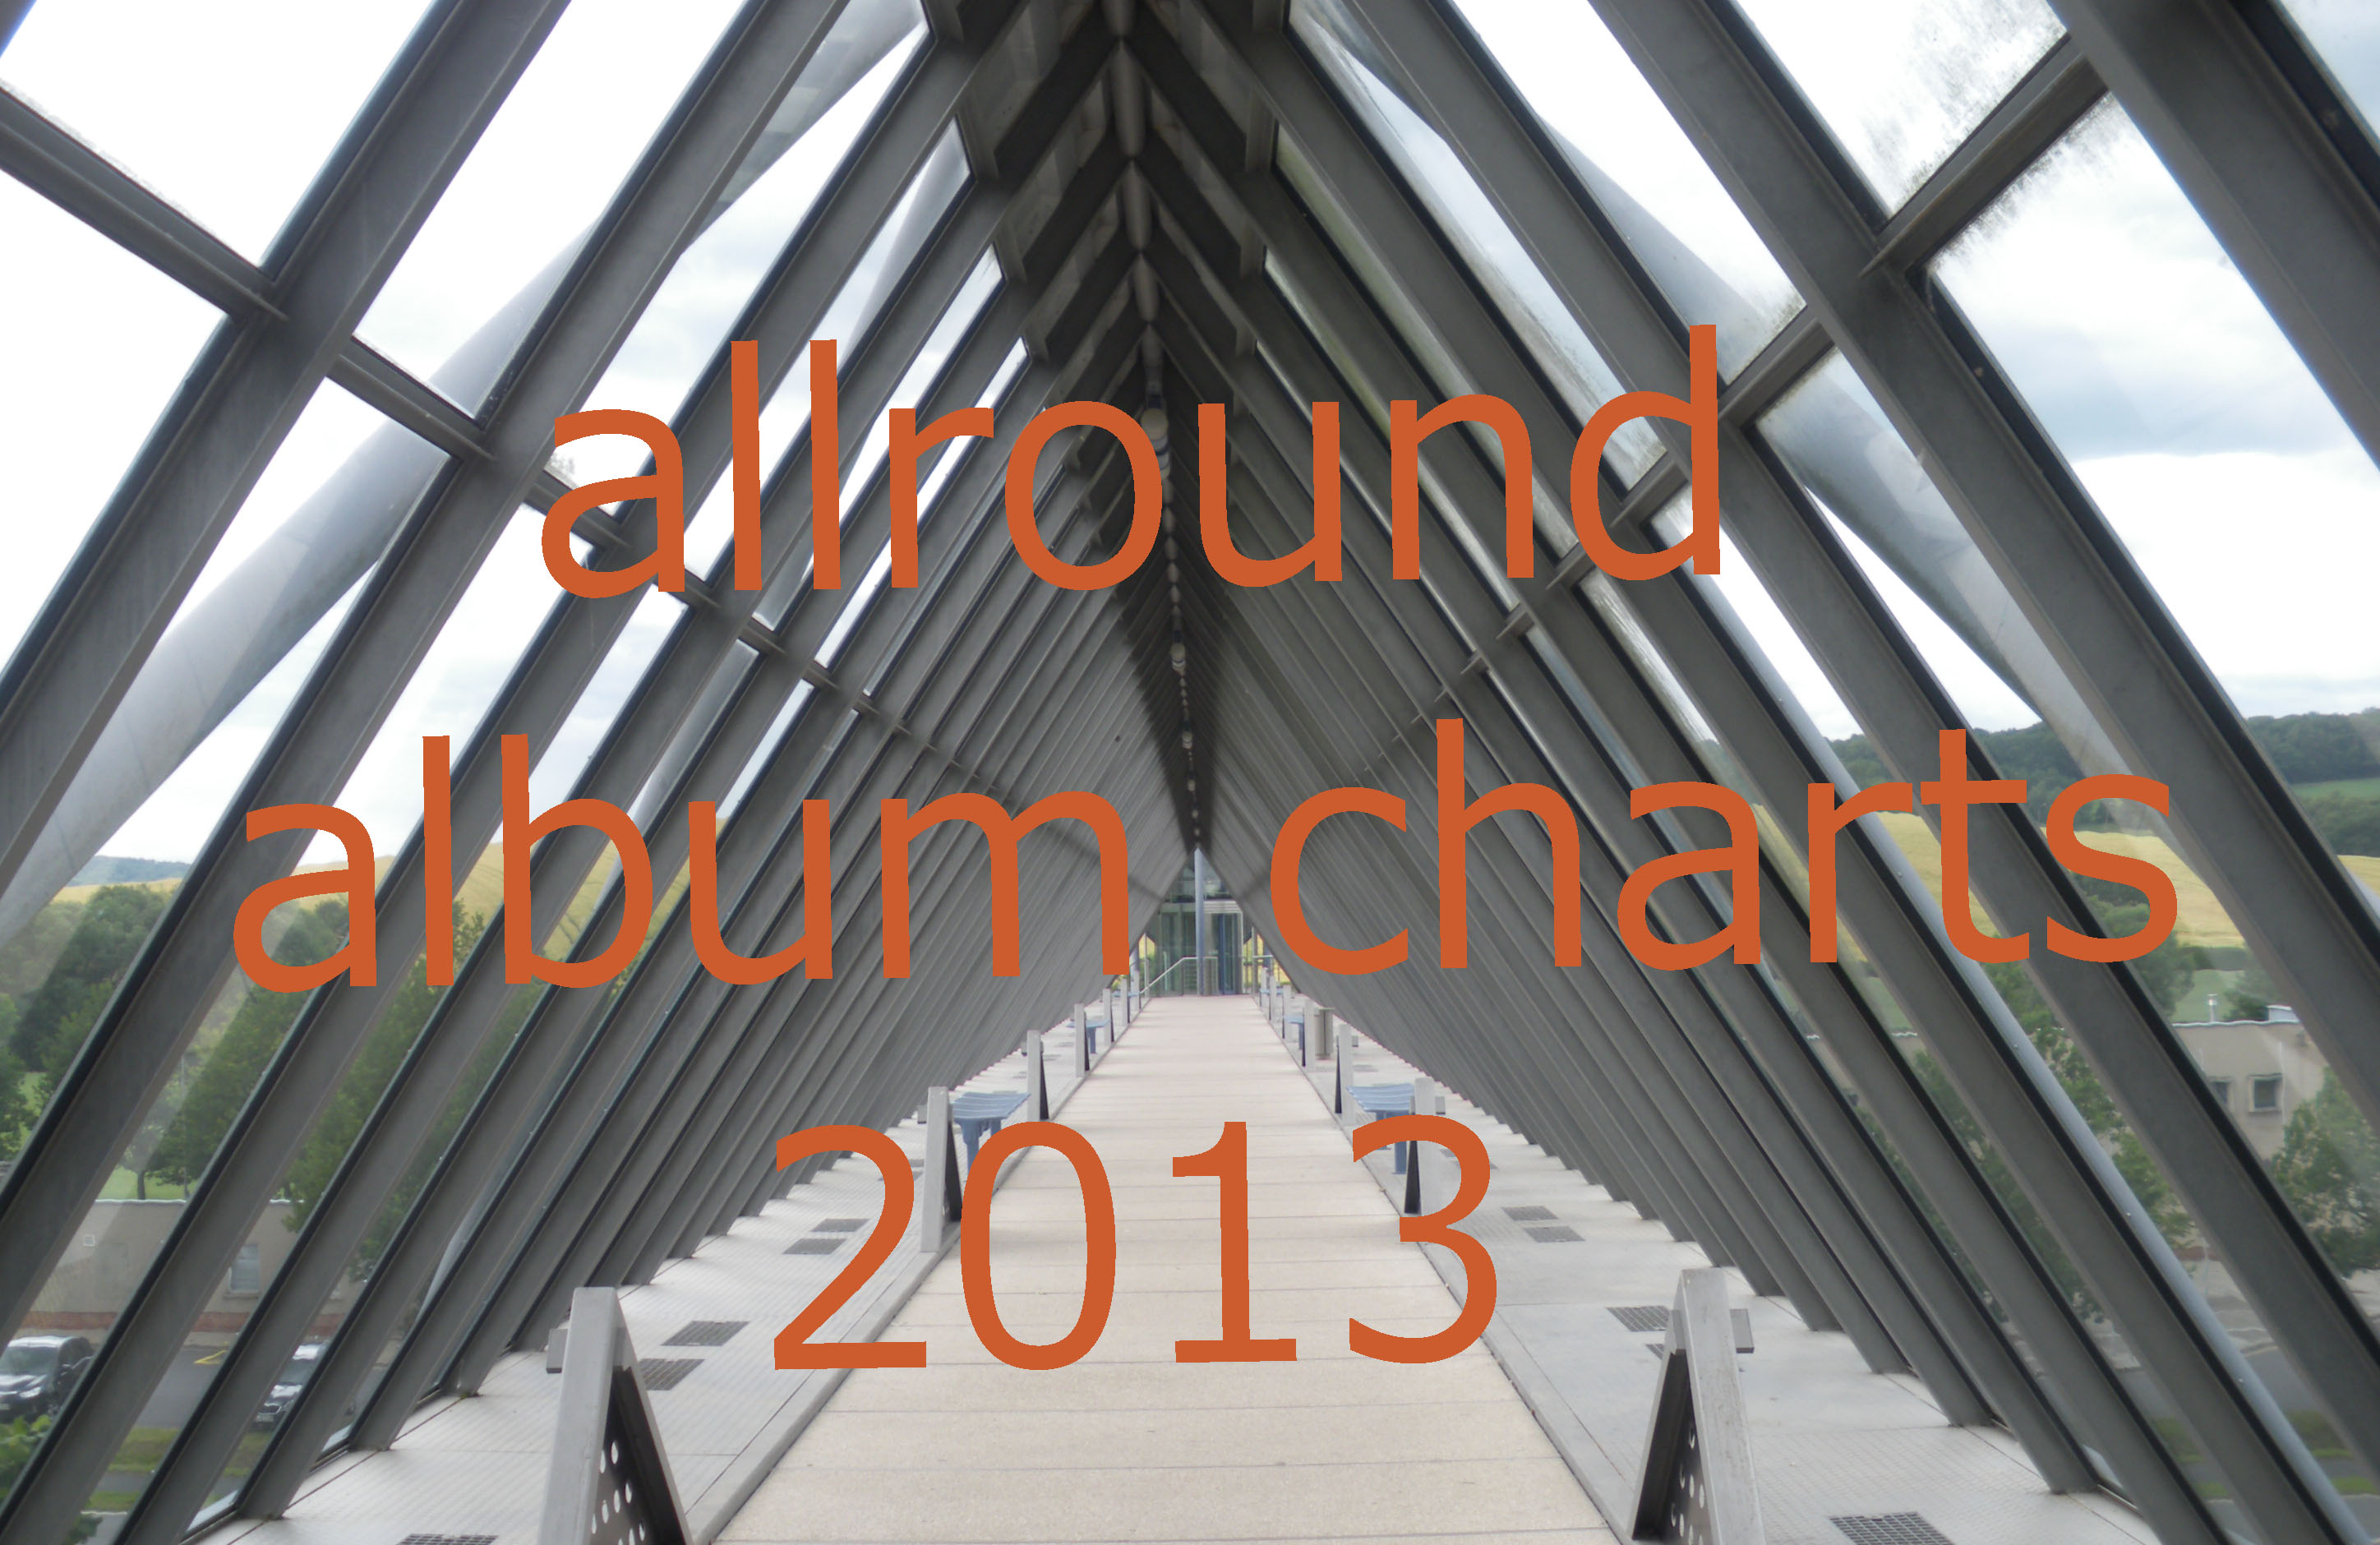 allround albumcharts 2013.jpg - 627.33 KB